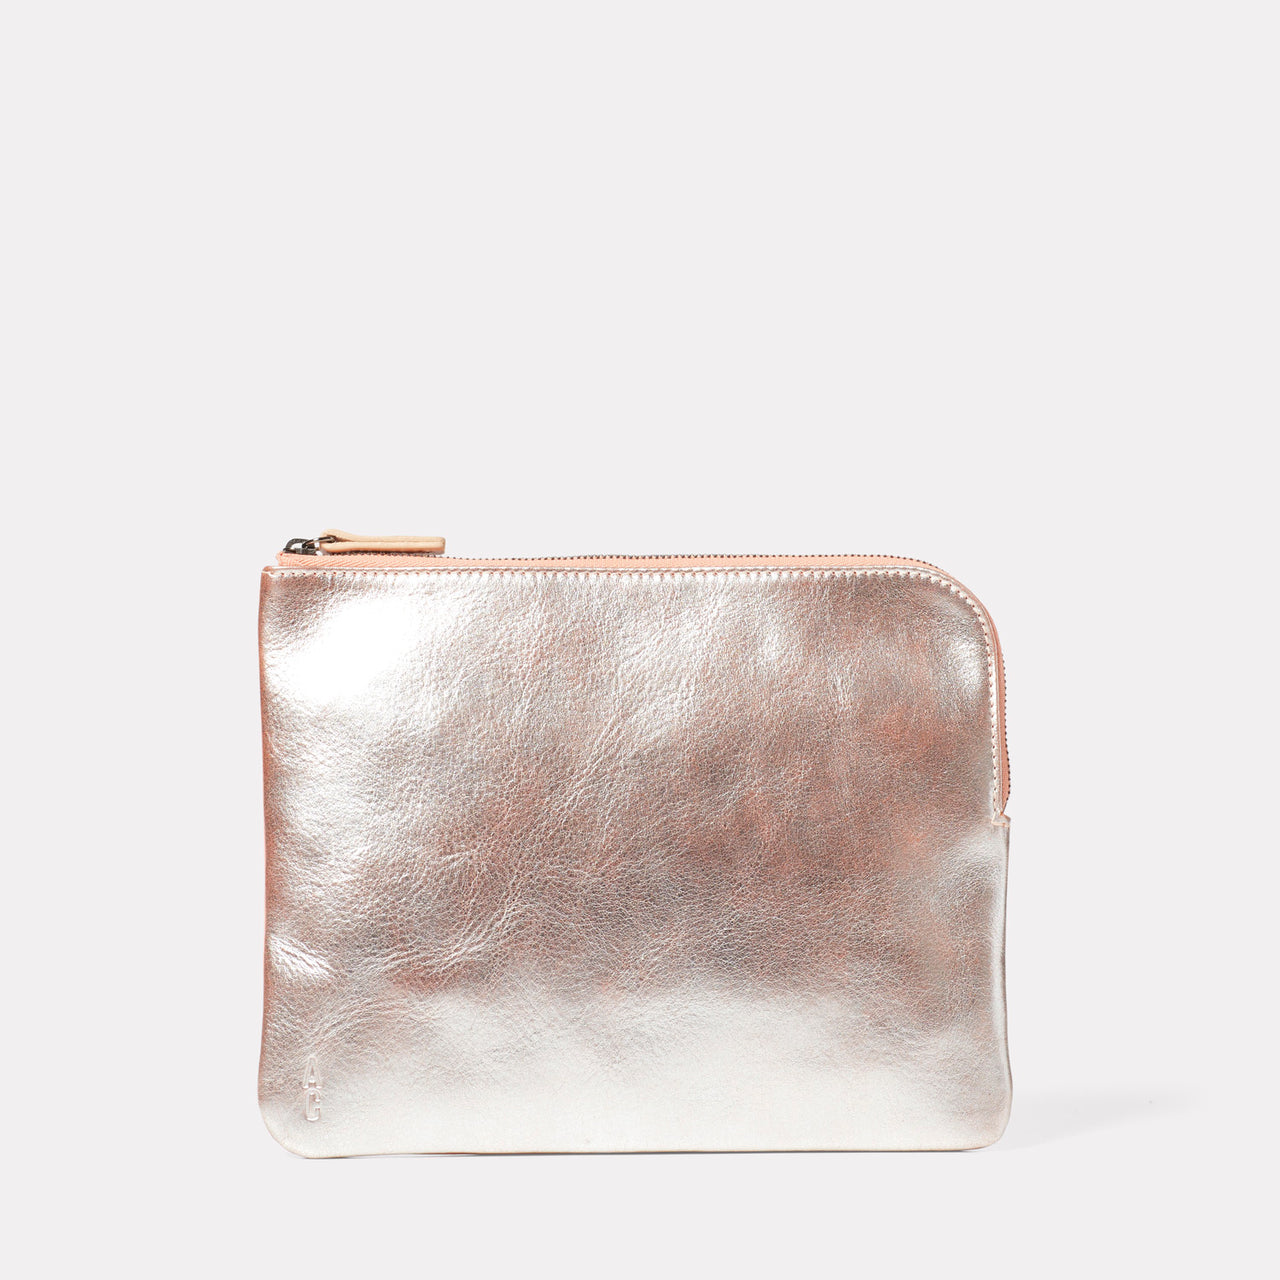 Big Jan Large Leather Purse in Peach Metallic